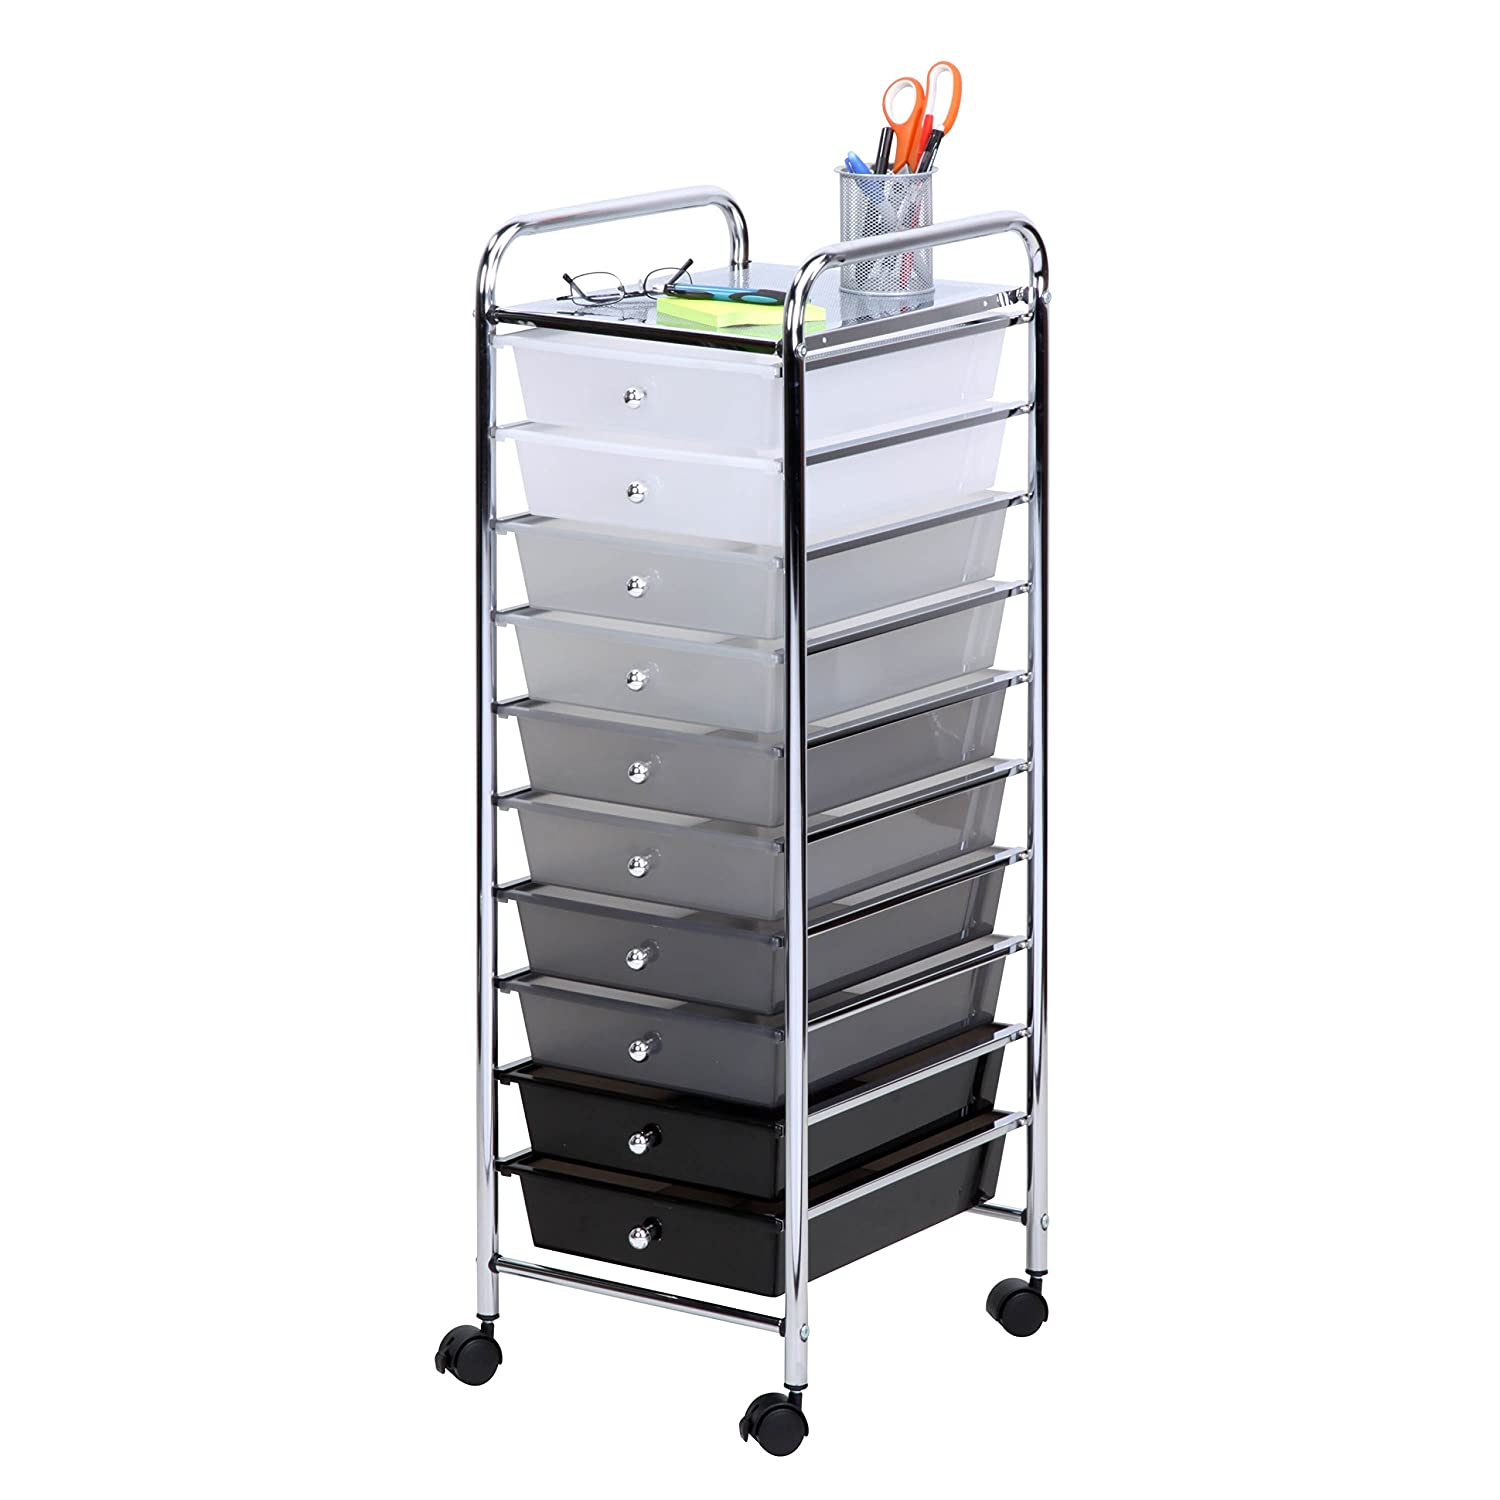 Honey-Can-Do CRT-05255 10 Drawer Shaded Storage cart 37.8 in L x 15.94 in W x 6.5 in H (96 cm L x 40.5 cm W x 16.5 cm H) Multicolor/Gray/Black/White